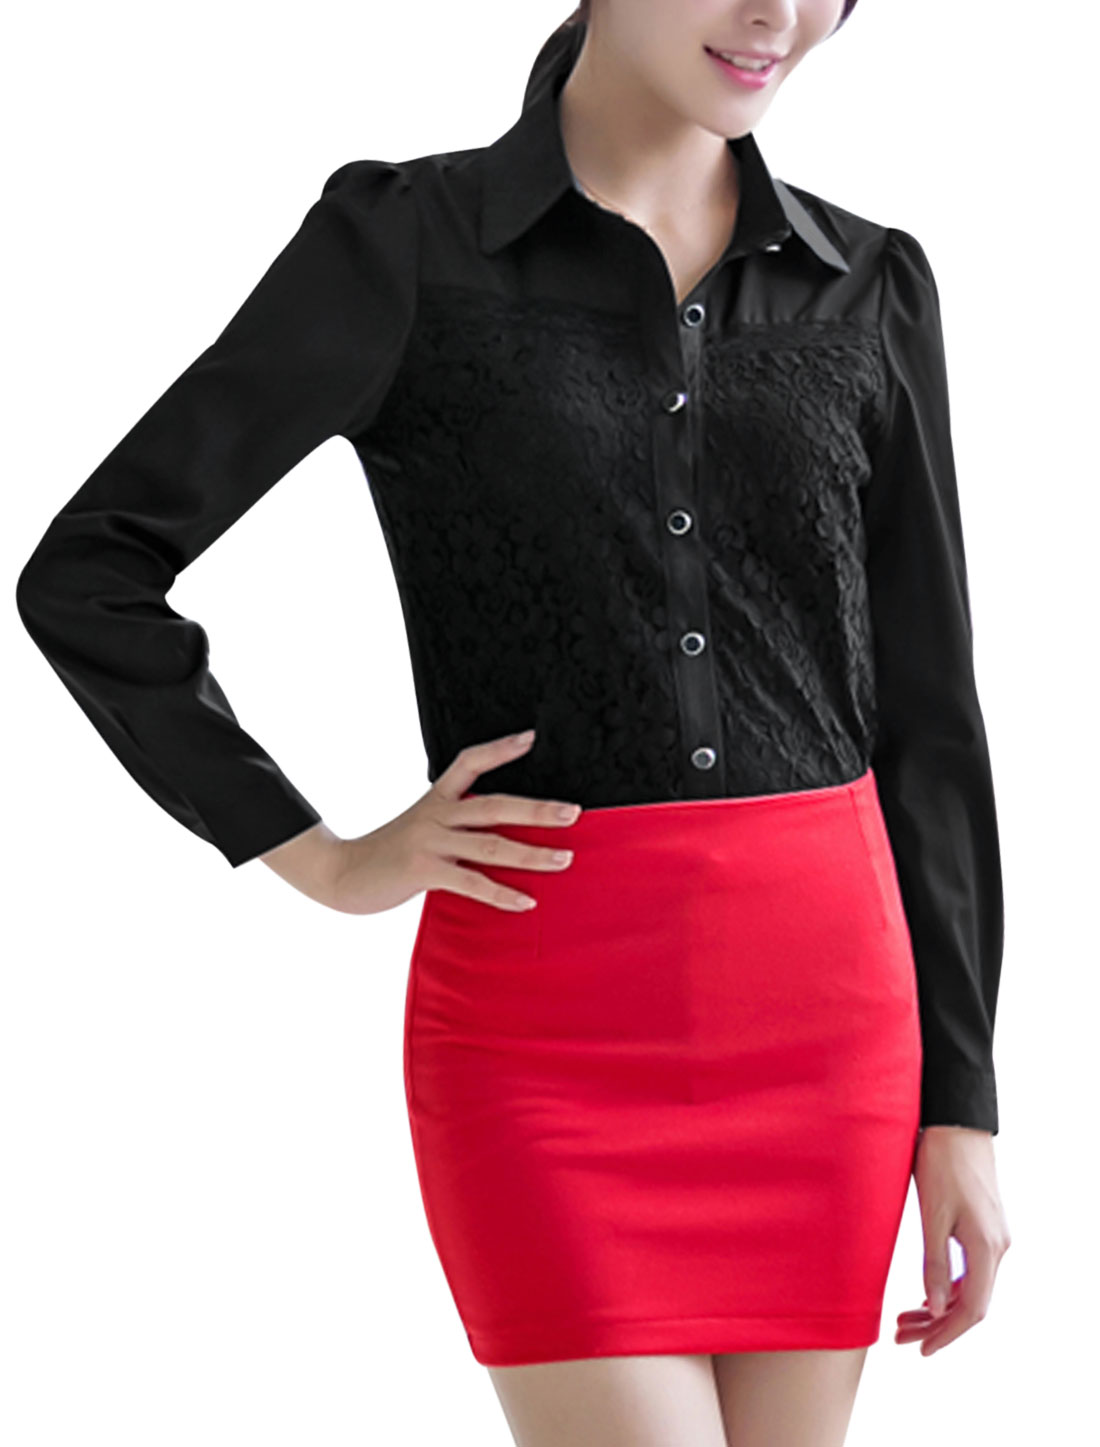 Lady Long Sleeve Single Breasted Point Collar Casual Shirt Black M